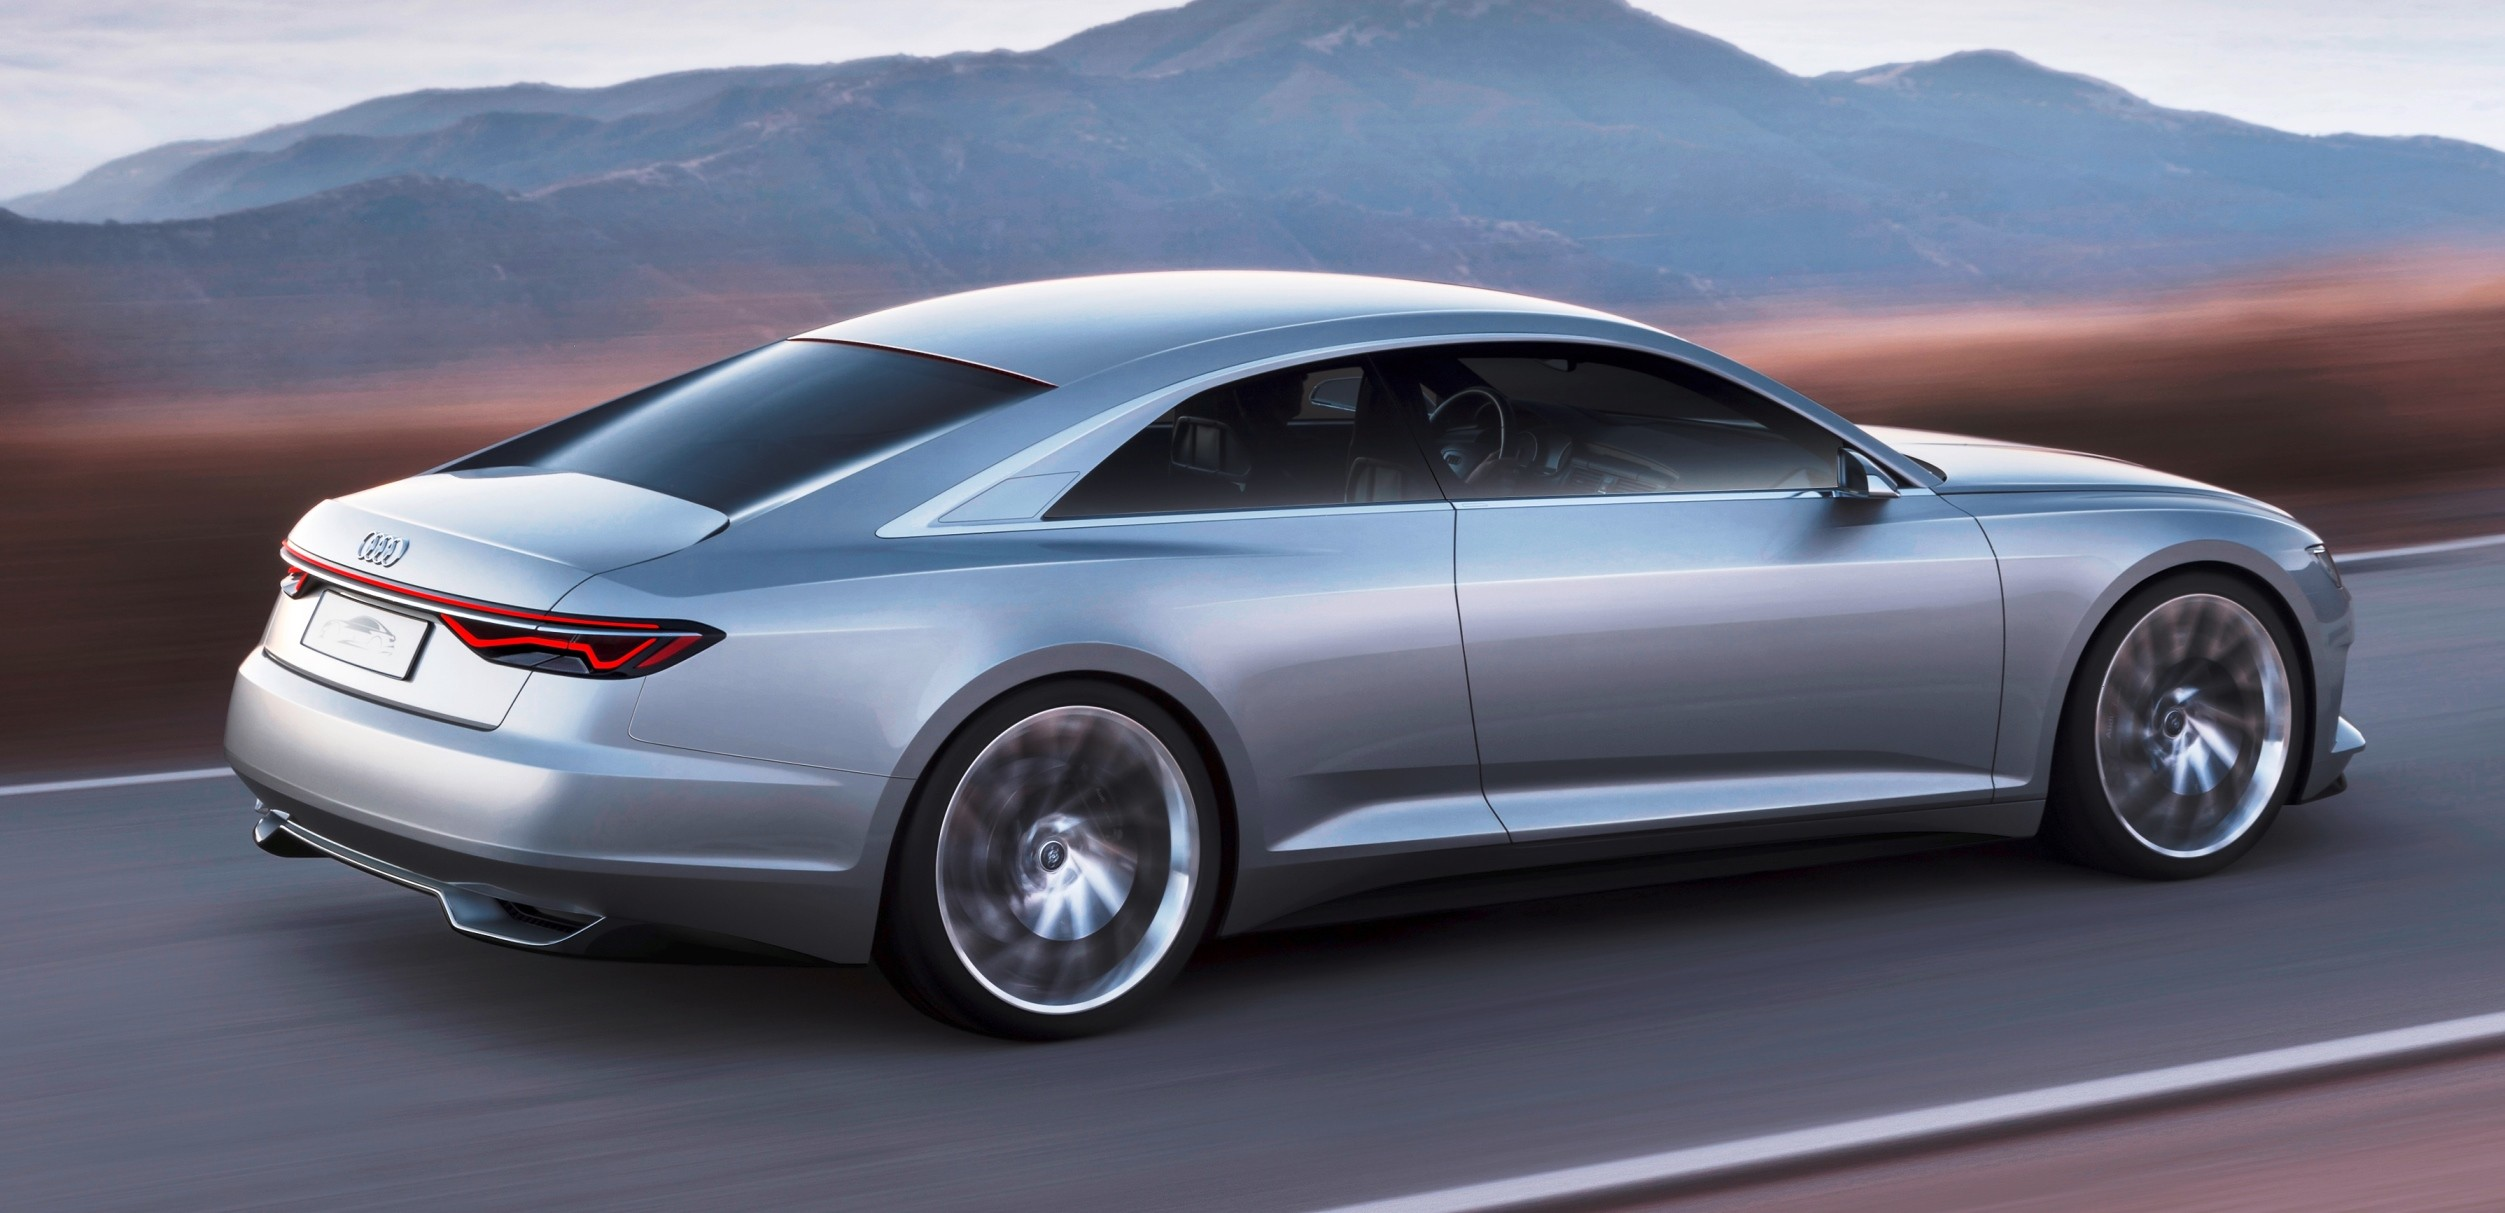 2014 Audi Prologue is Worst of LA 2014 27